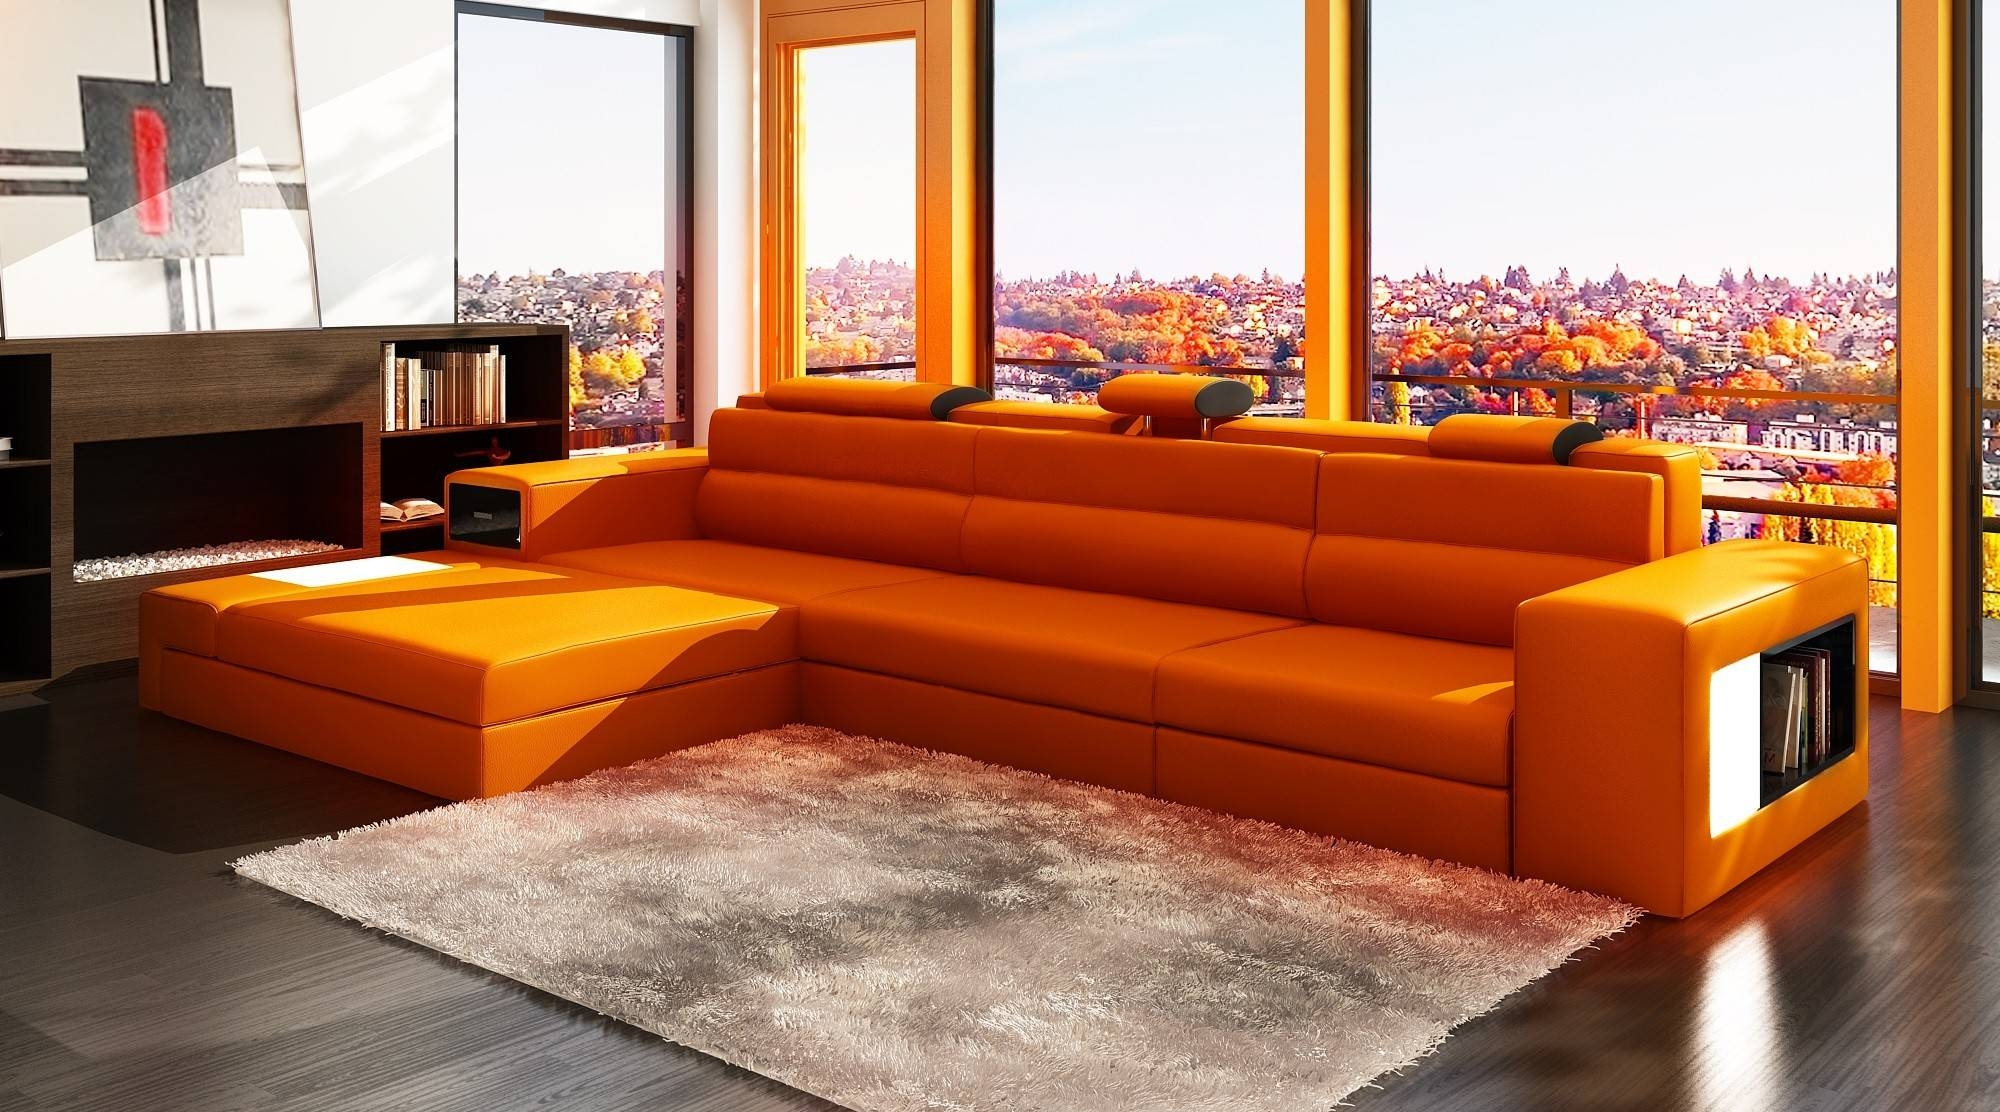 Furniture Home : Knopparp 2 Seat Sofa Orange 0522174 Pe643130 inside Orange Modern Sofas (Image 7 of 15)